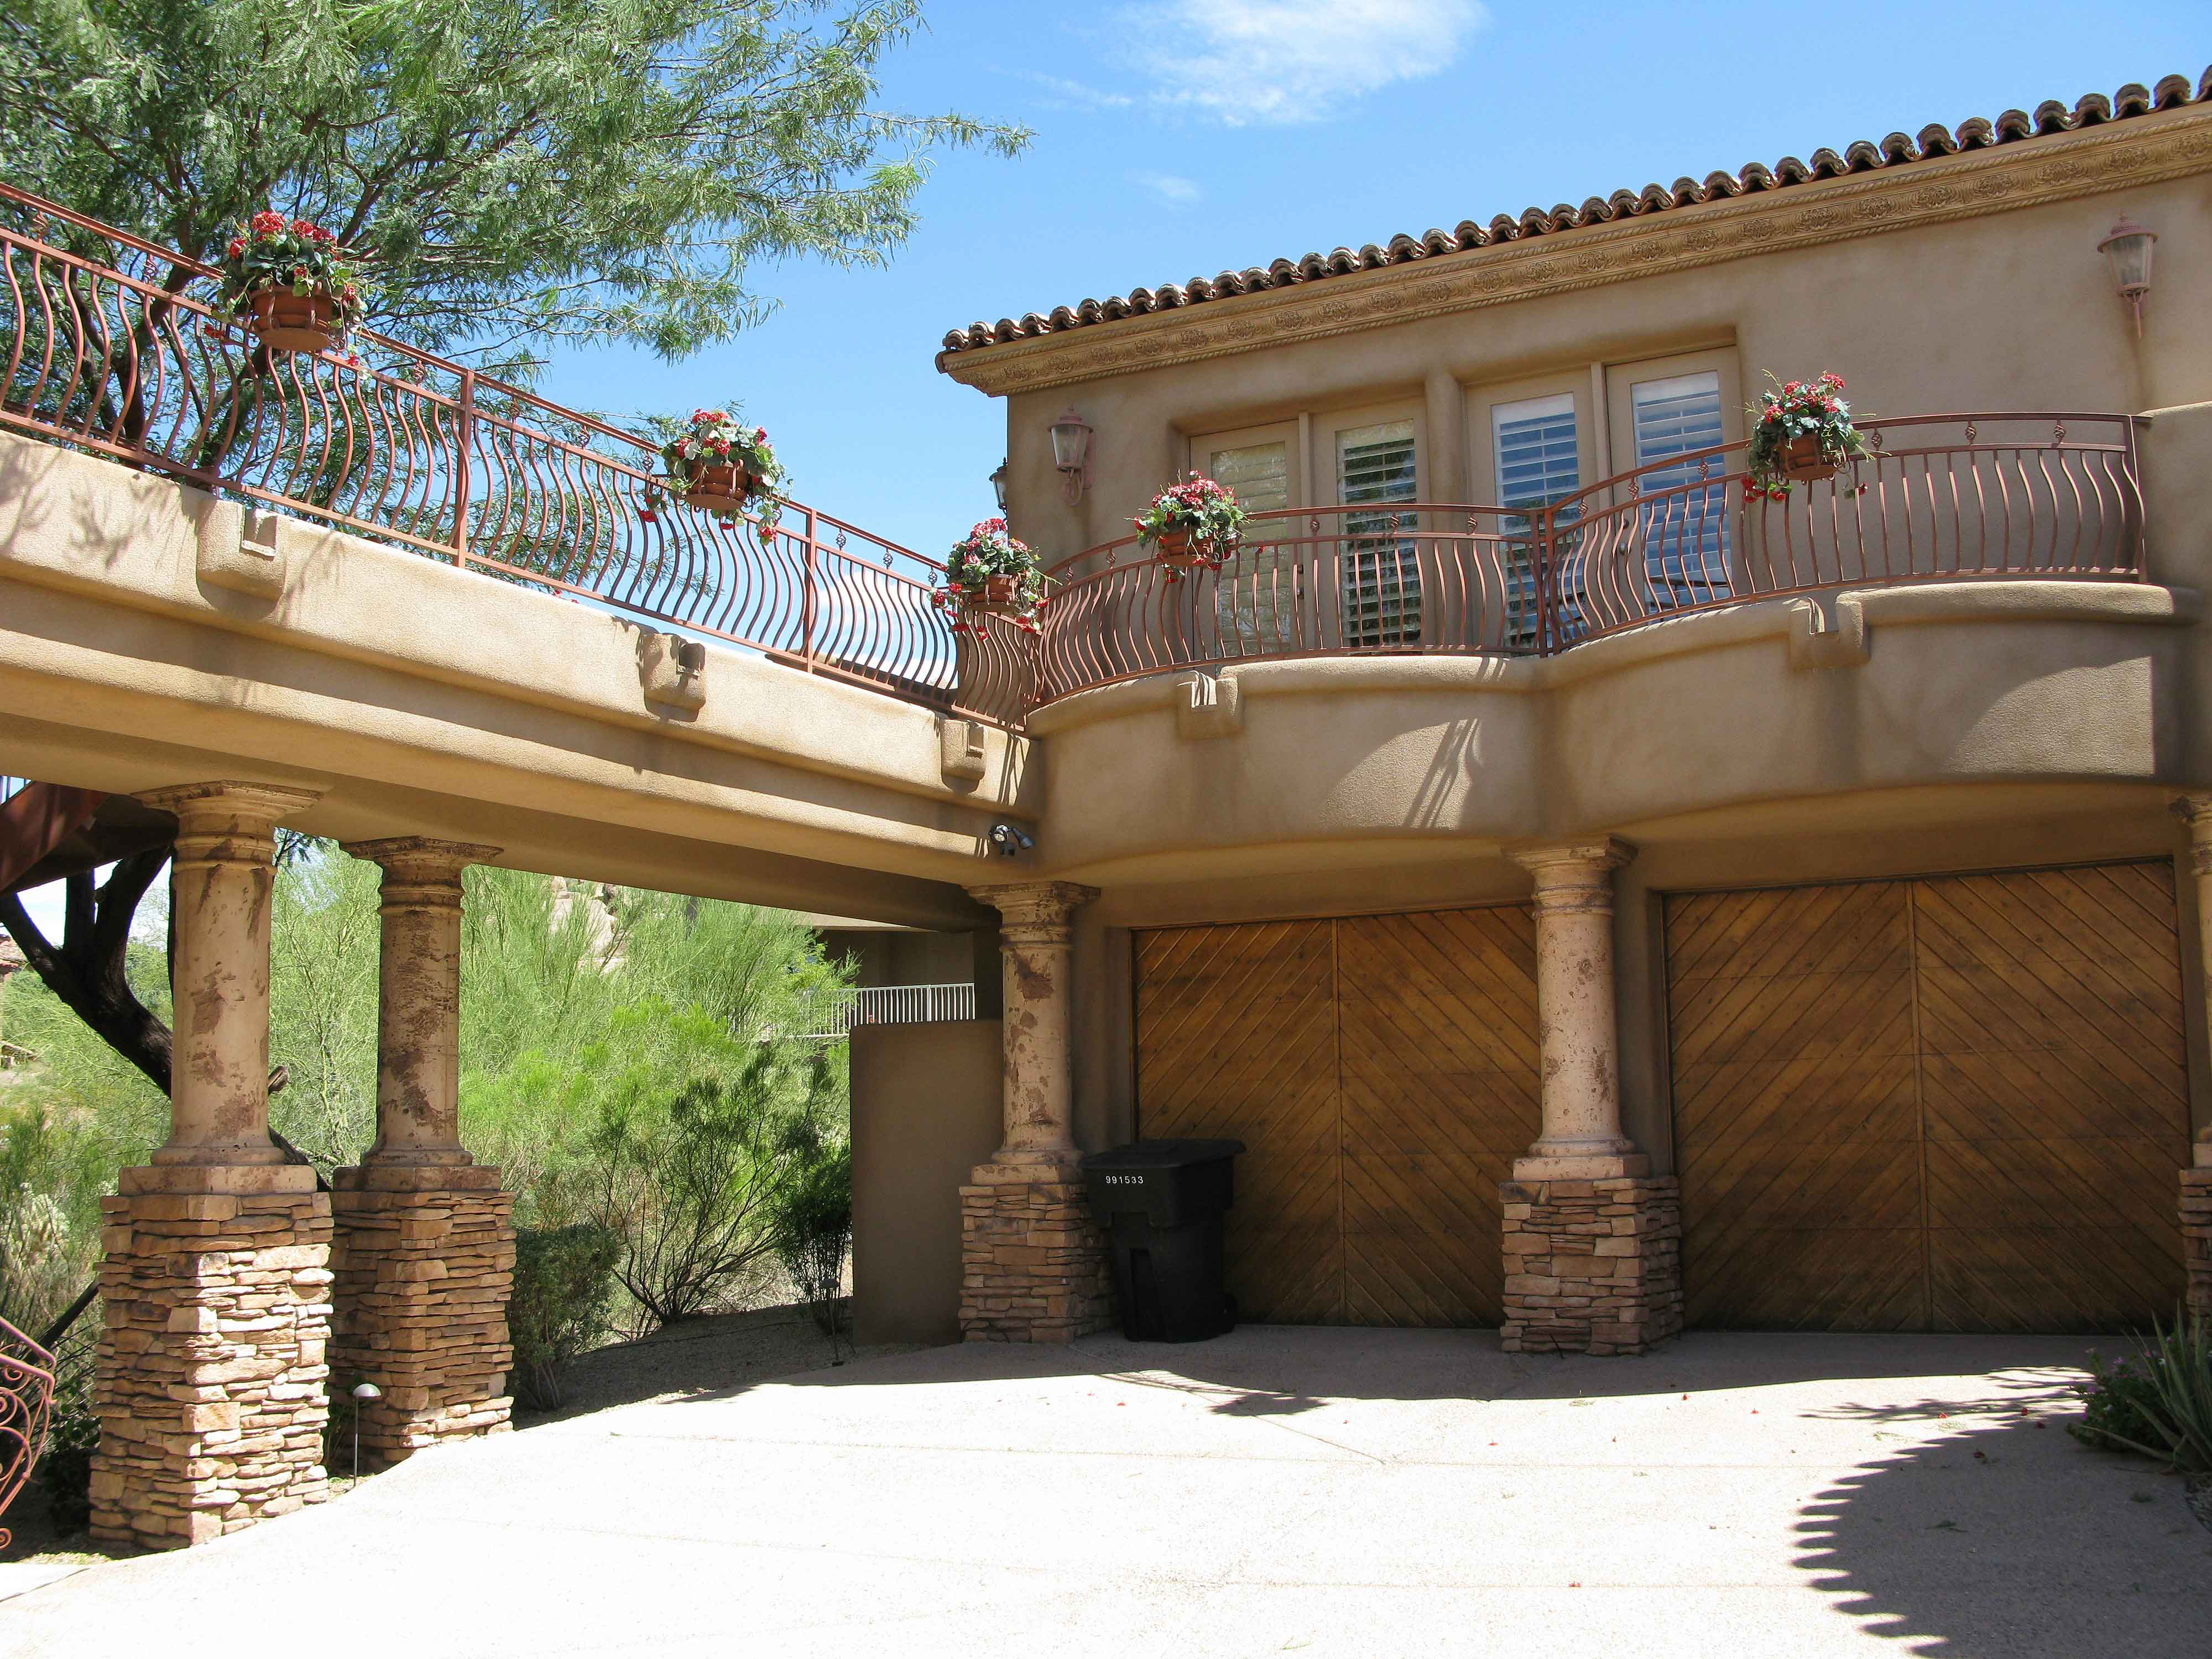 New Homes For Sale Scottsdale Paradise Valley Real Estate Fountain